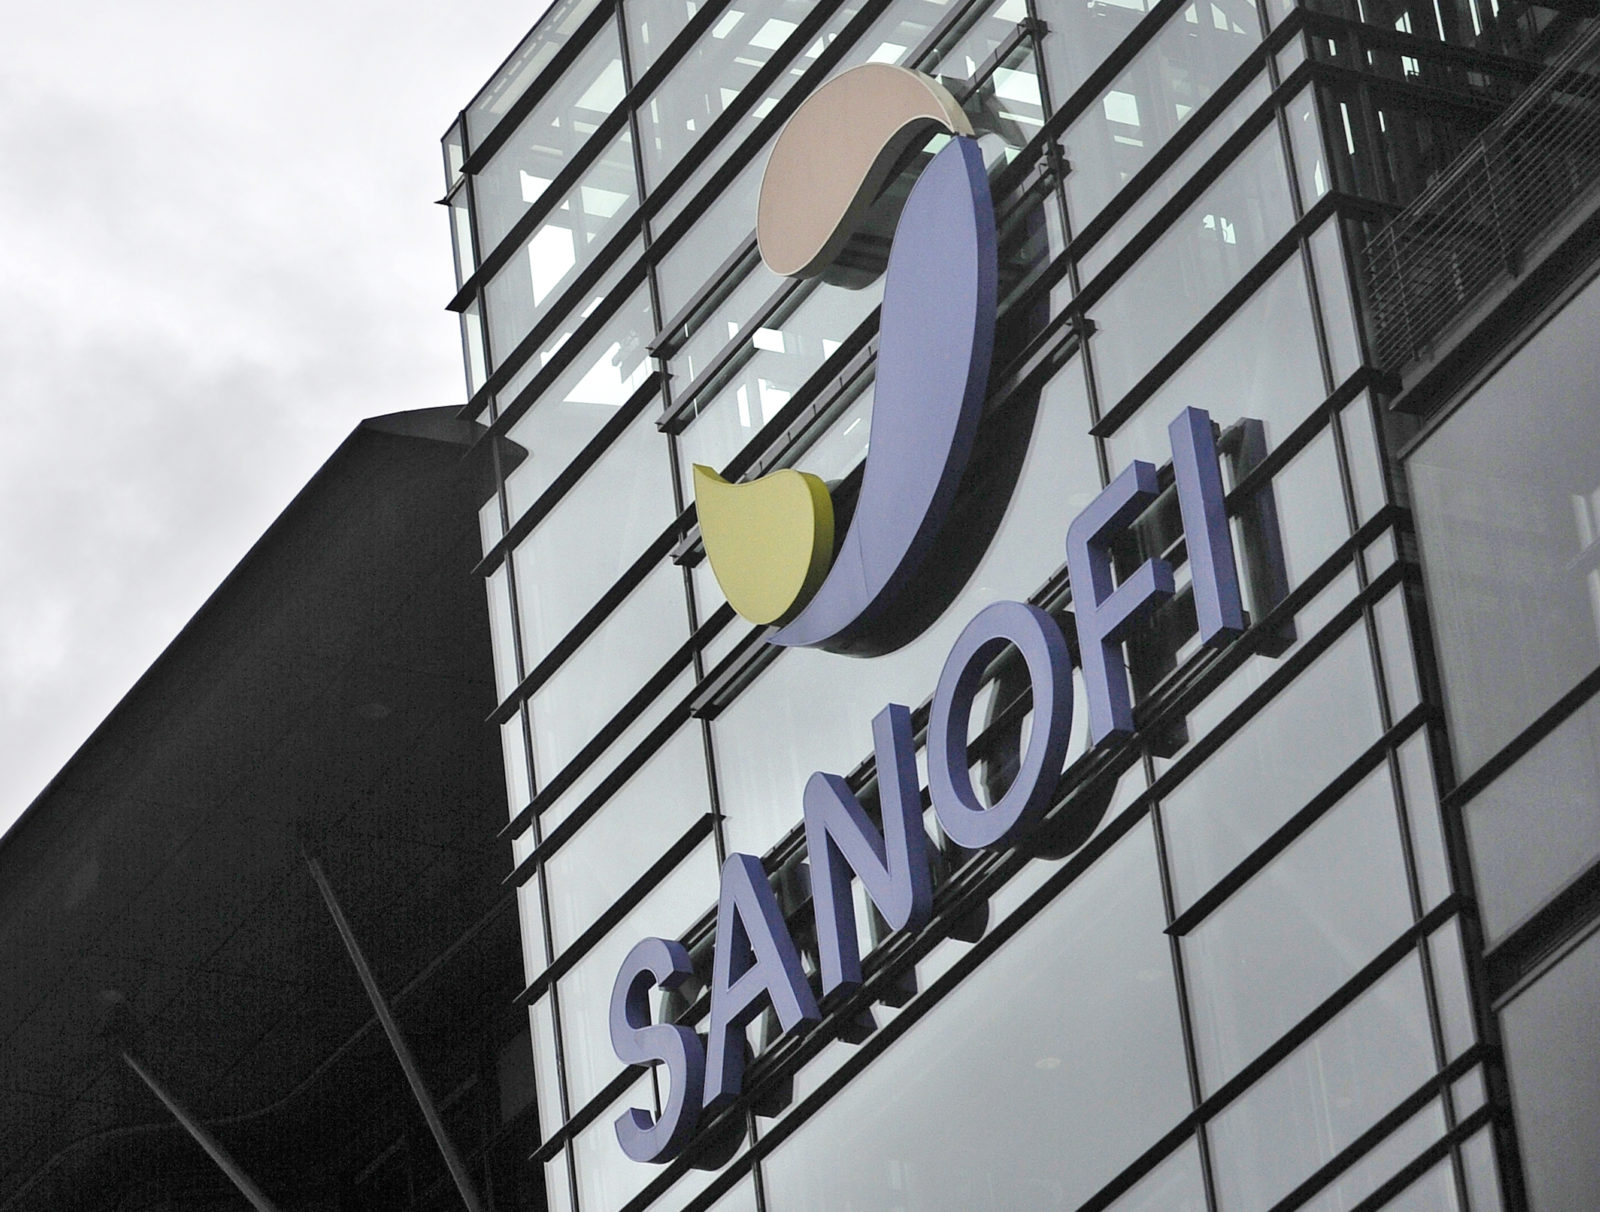 French pharmaceutical giant, Sanofi to make COVID-19 vaccine available